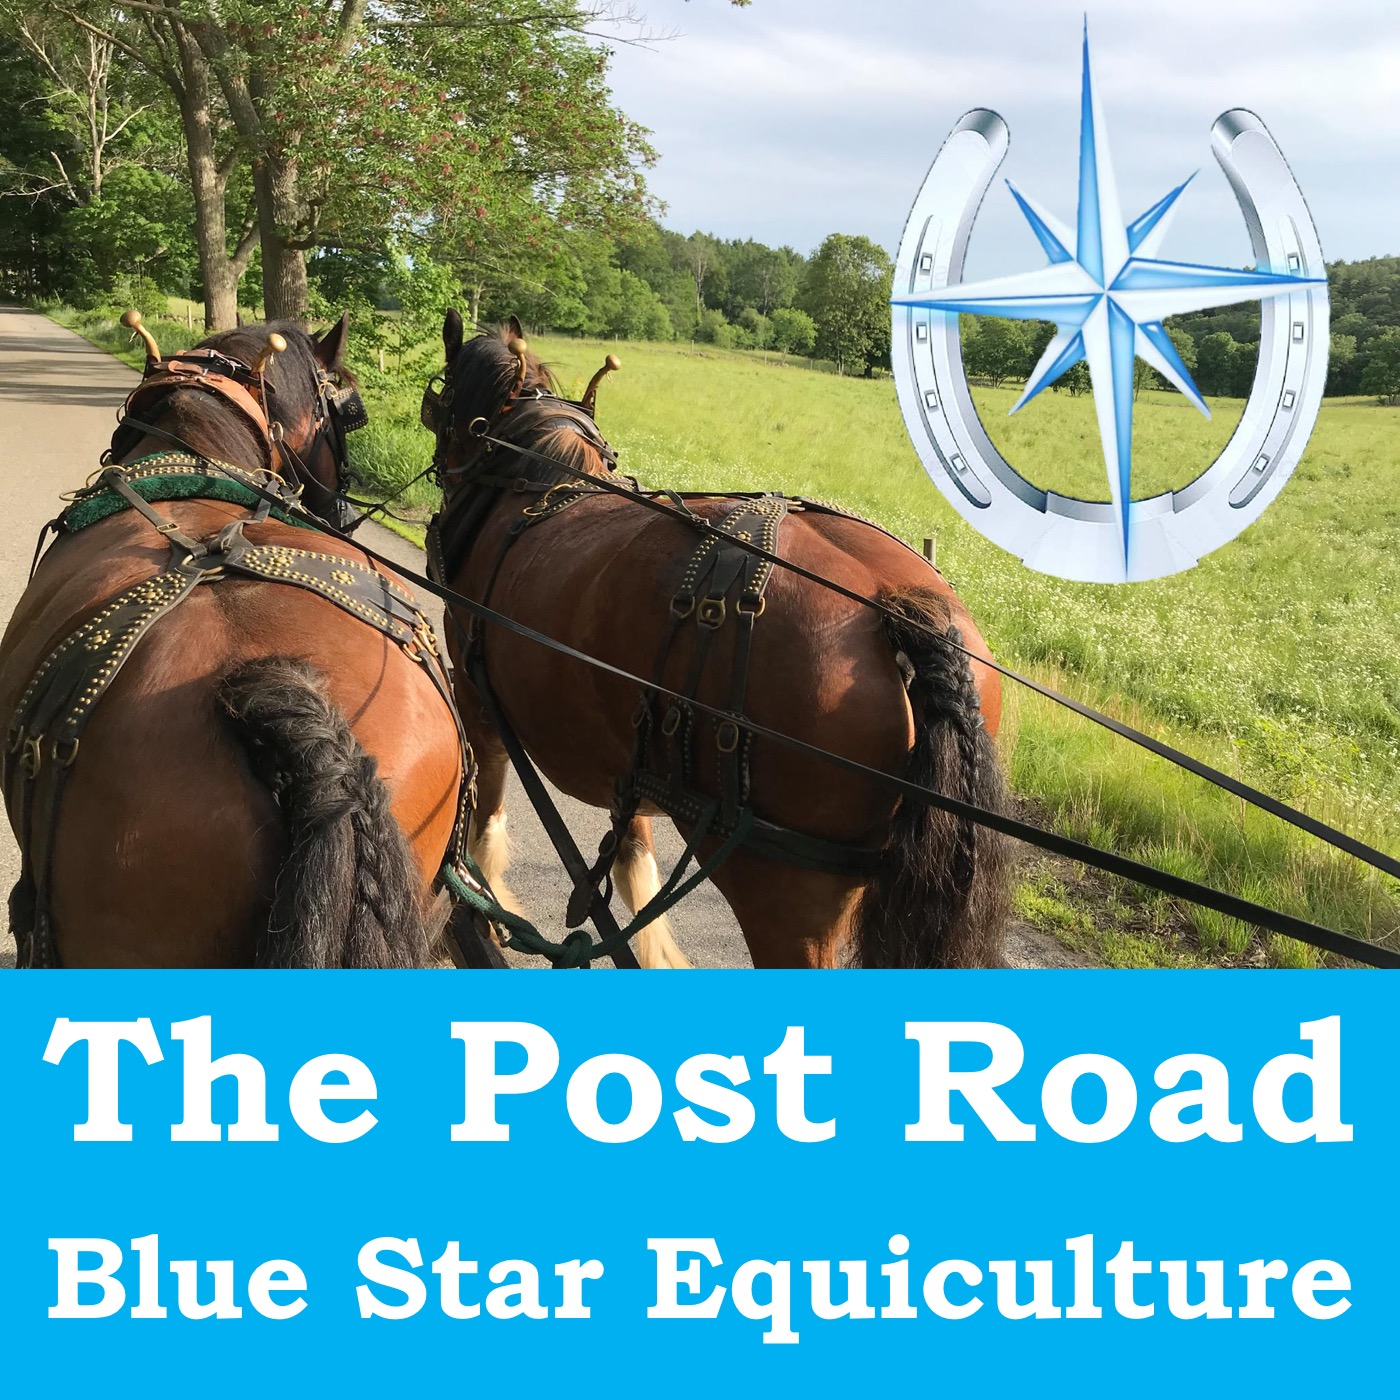 The Post Road Episode 004: Mud, Living in the Round, Elephants, and The Last Horsemen of New York show art